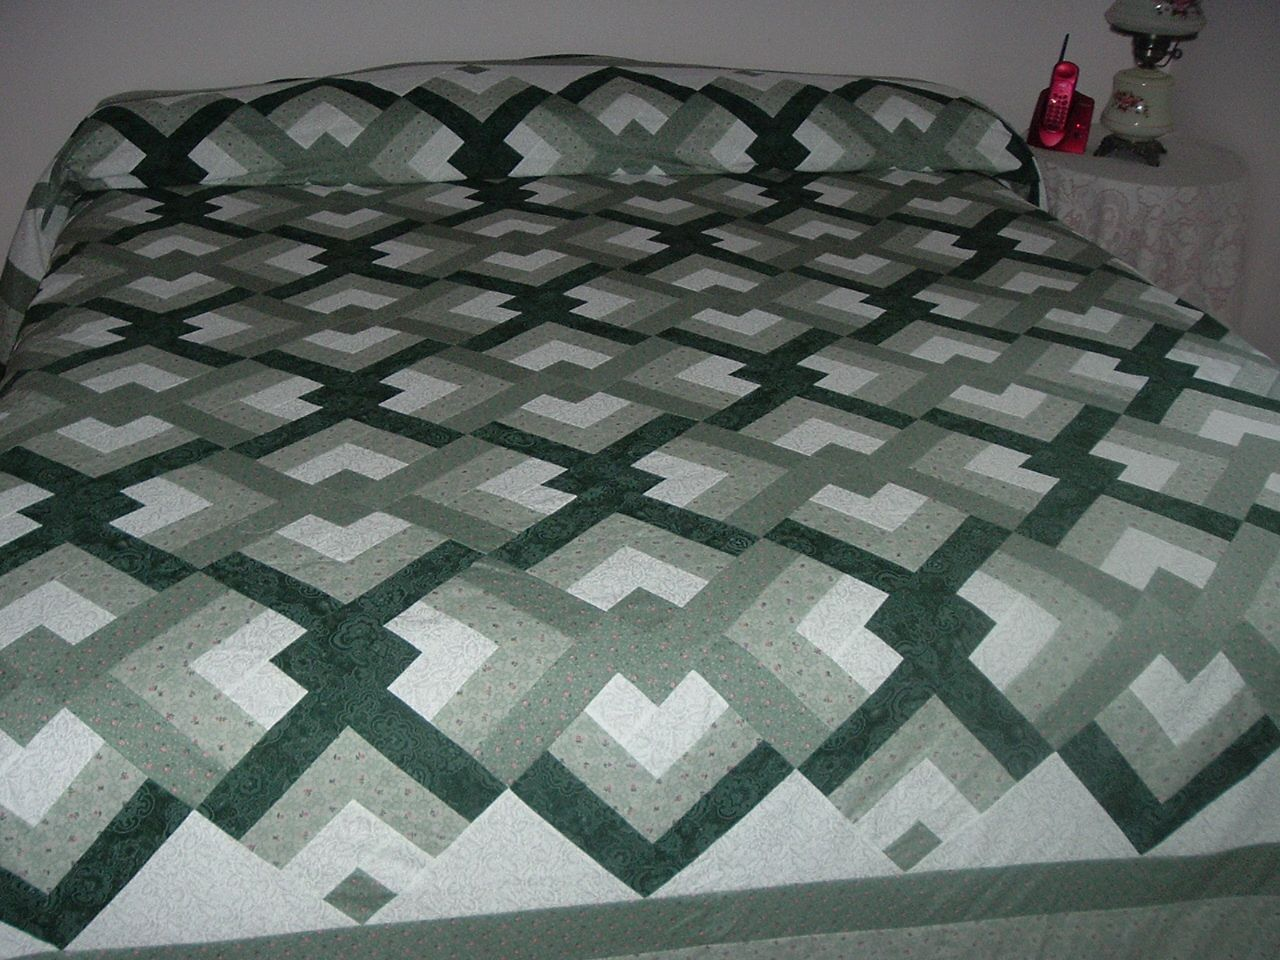 Quilting Pattern Lovers Knot : lovers knot quilt Lover s Knot might make a nice wedding quilt. I Do. quilt love ...